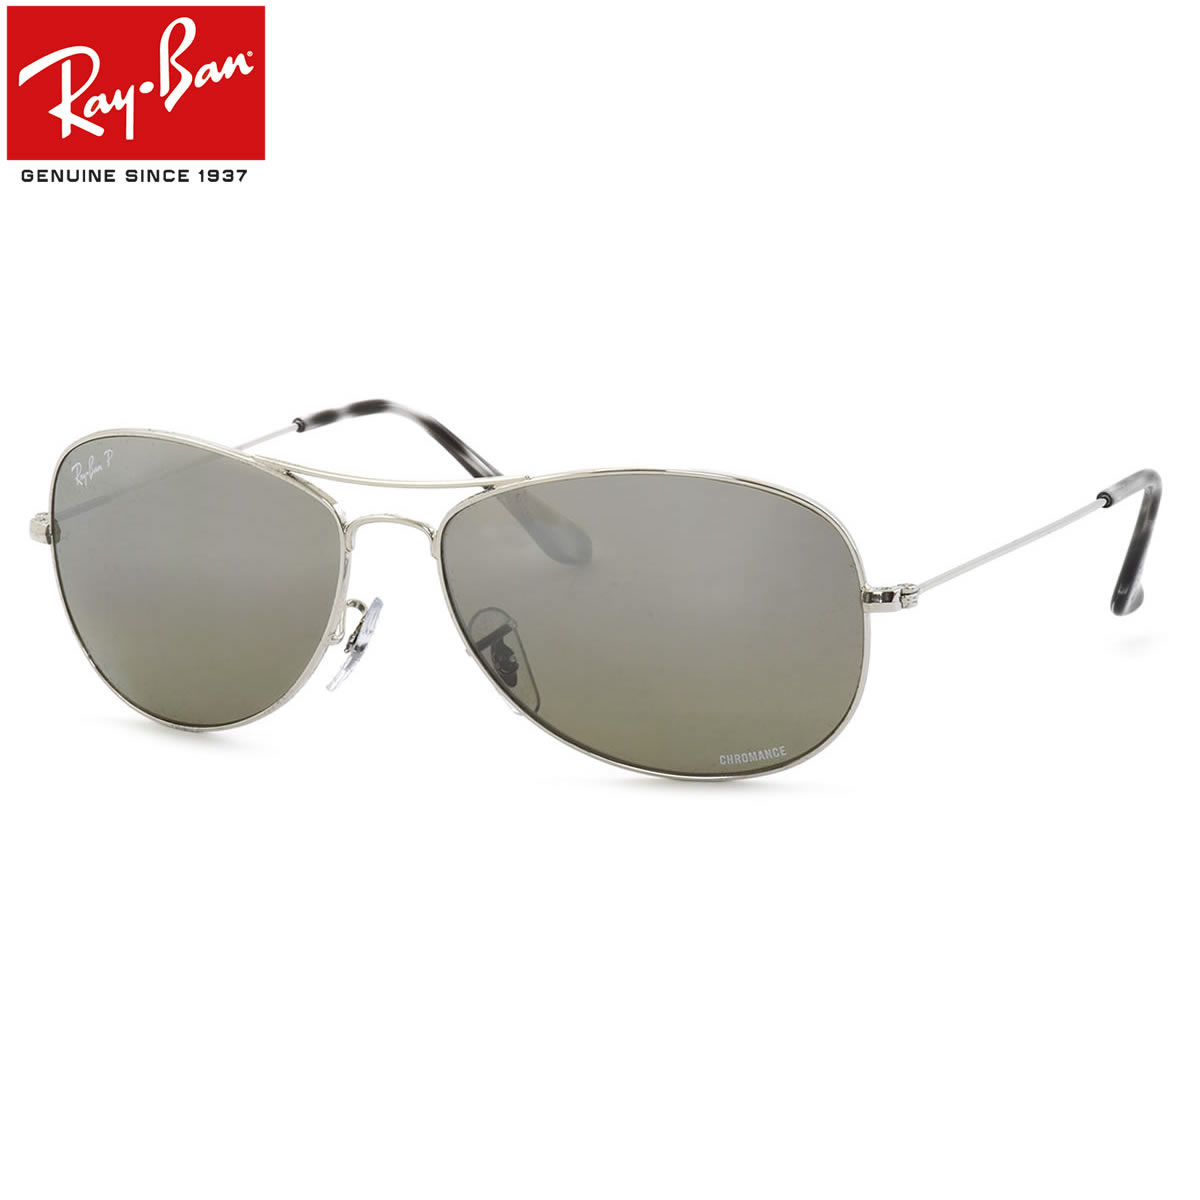 681828bf3a8ff Ray-Ban sunglasses mirror polarization chroman Ray-Ban RB3562 003 5J 59  size Ray-Ban RAYBAN CHROMANCE LENSES 0035J AVIATOR アビエーター COCKPIT cockpit  two ...